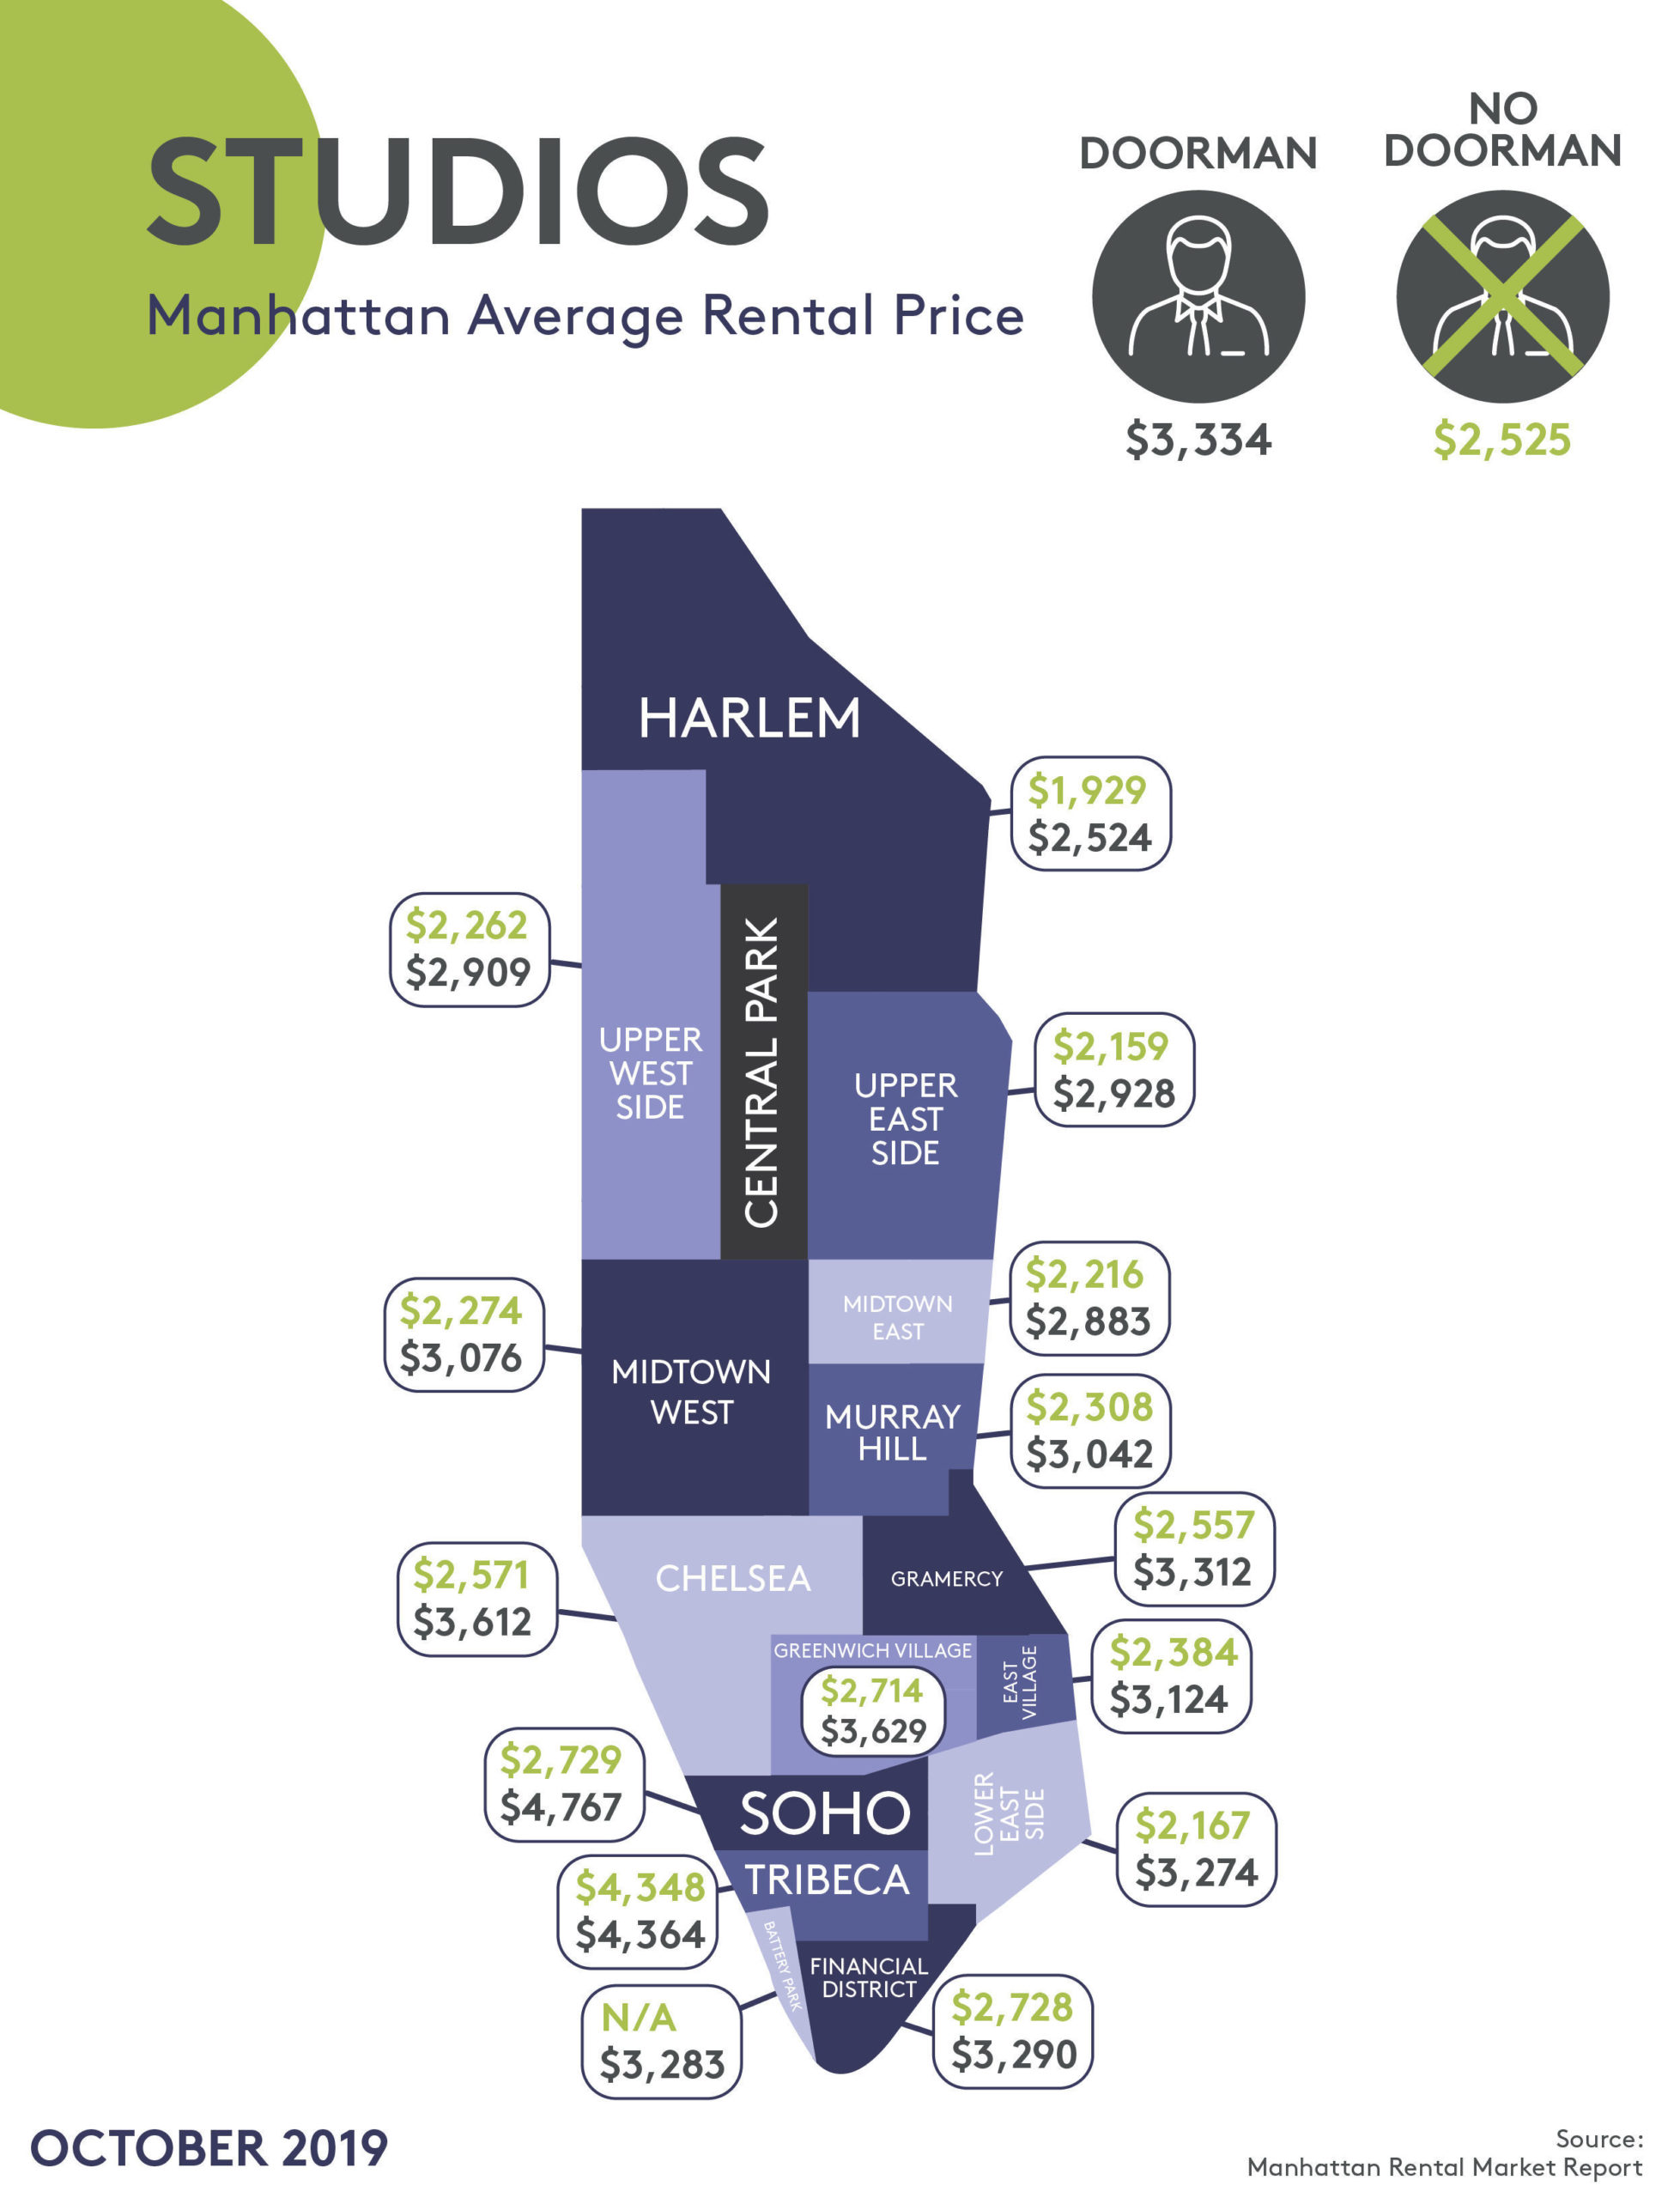 Prices for studio apartments in Manhattan